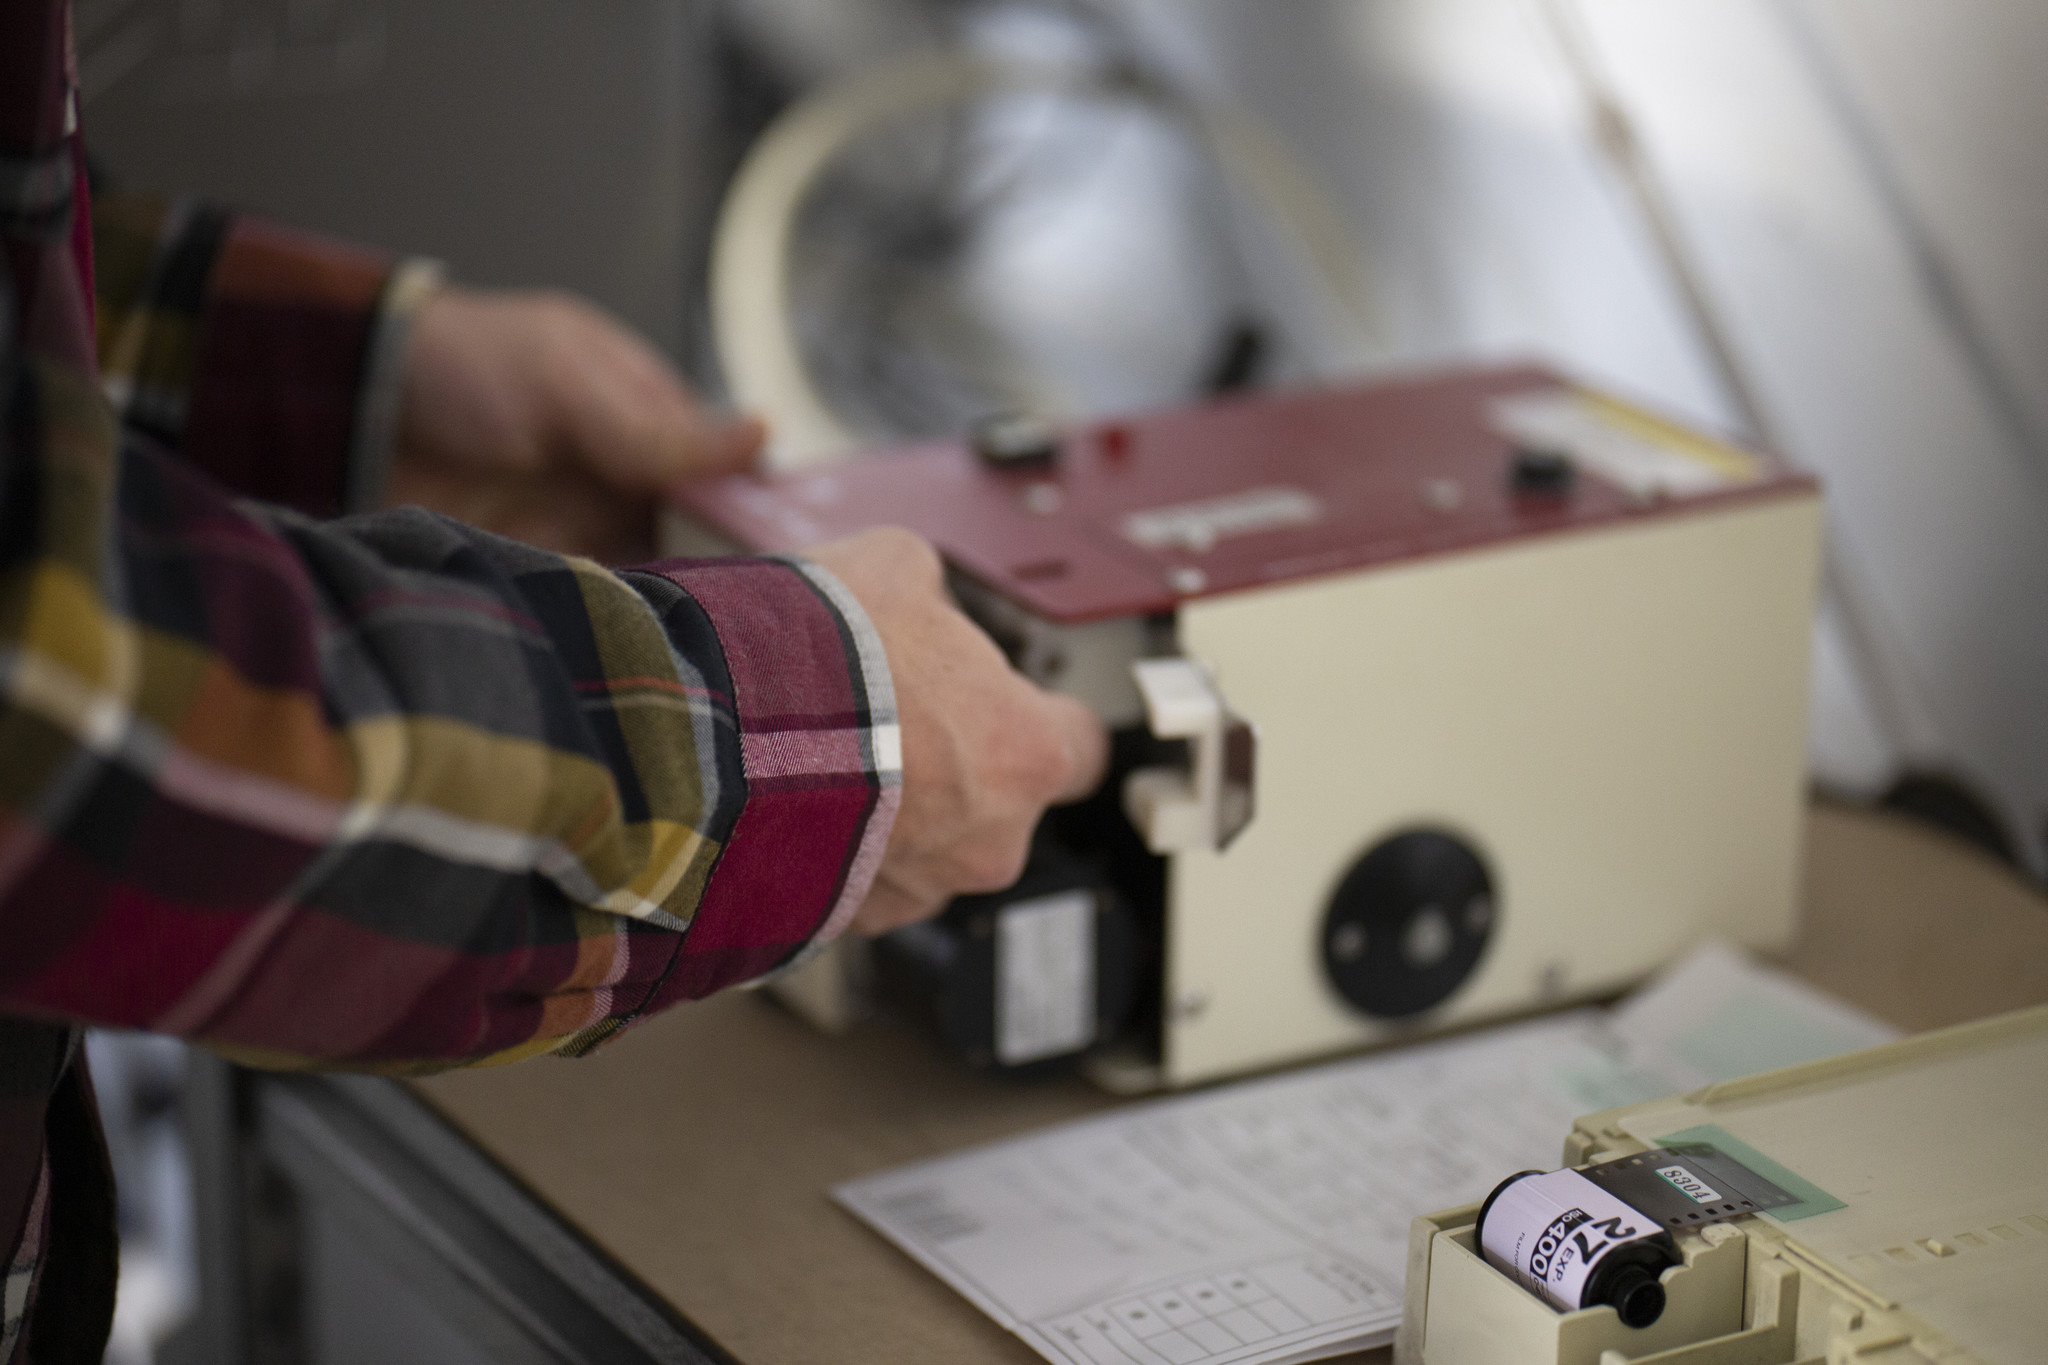 Every roll of film is processed with care at LeZot Camera.